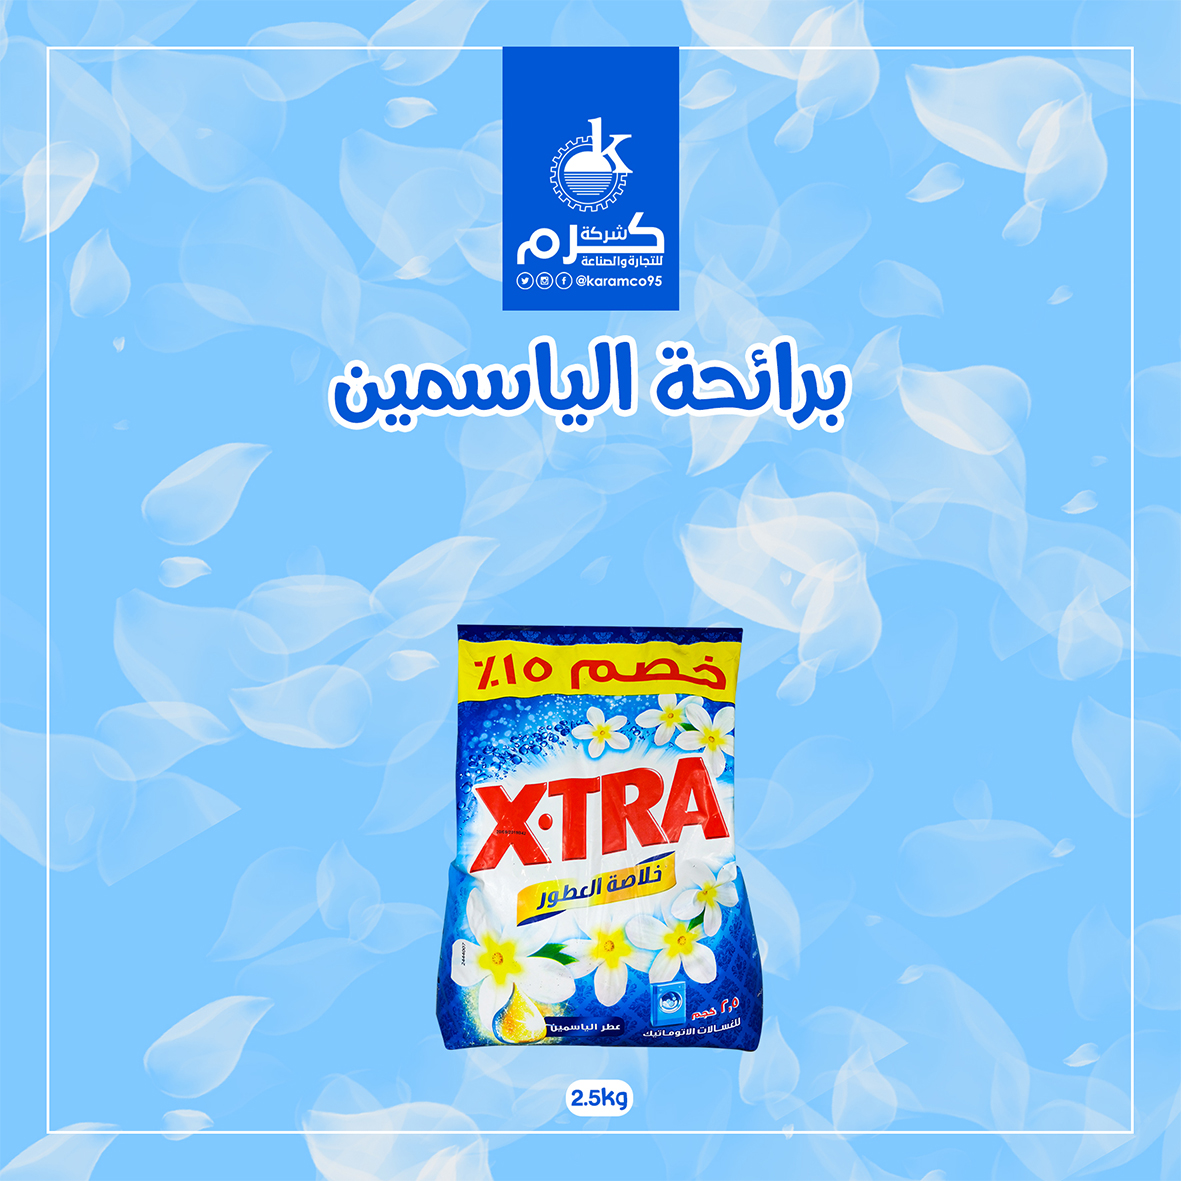 X.tra Washing Powder ( Jasmine Smell) 2.5 Kg